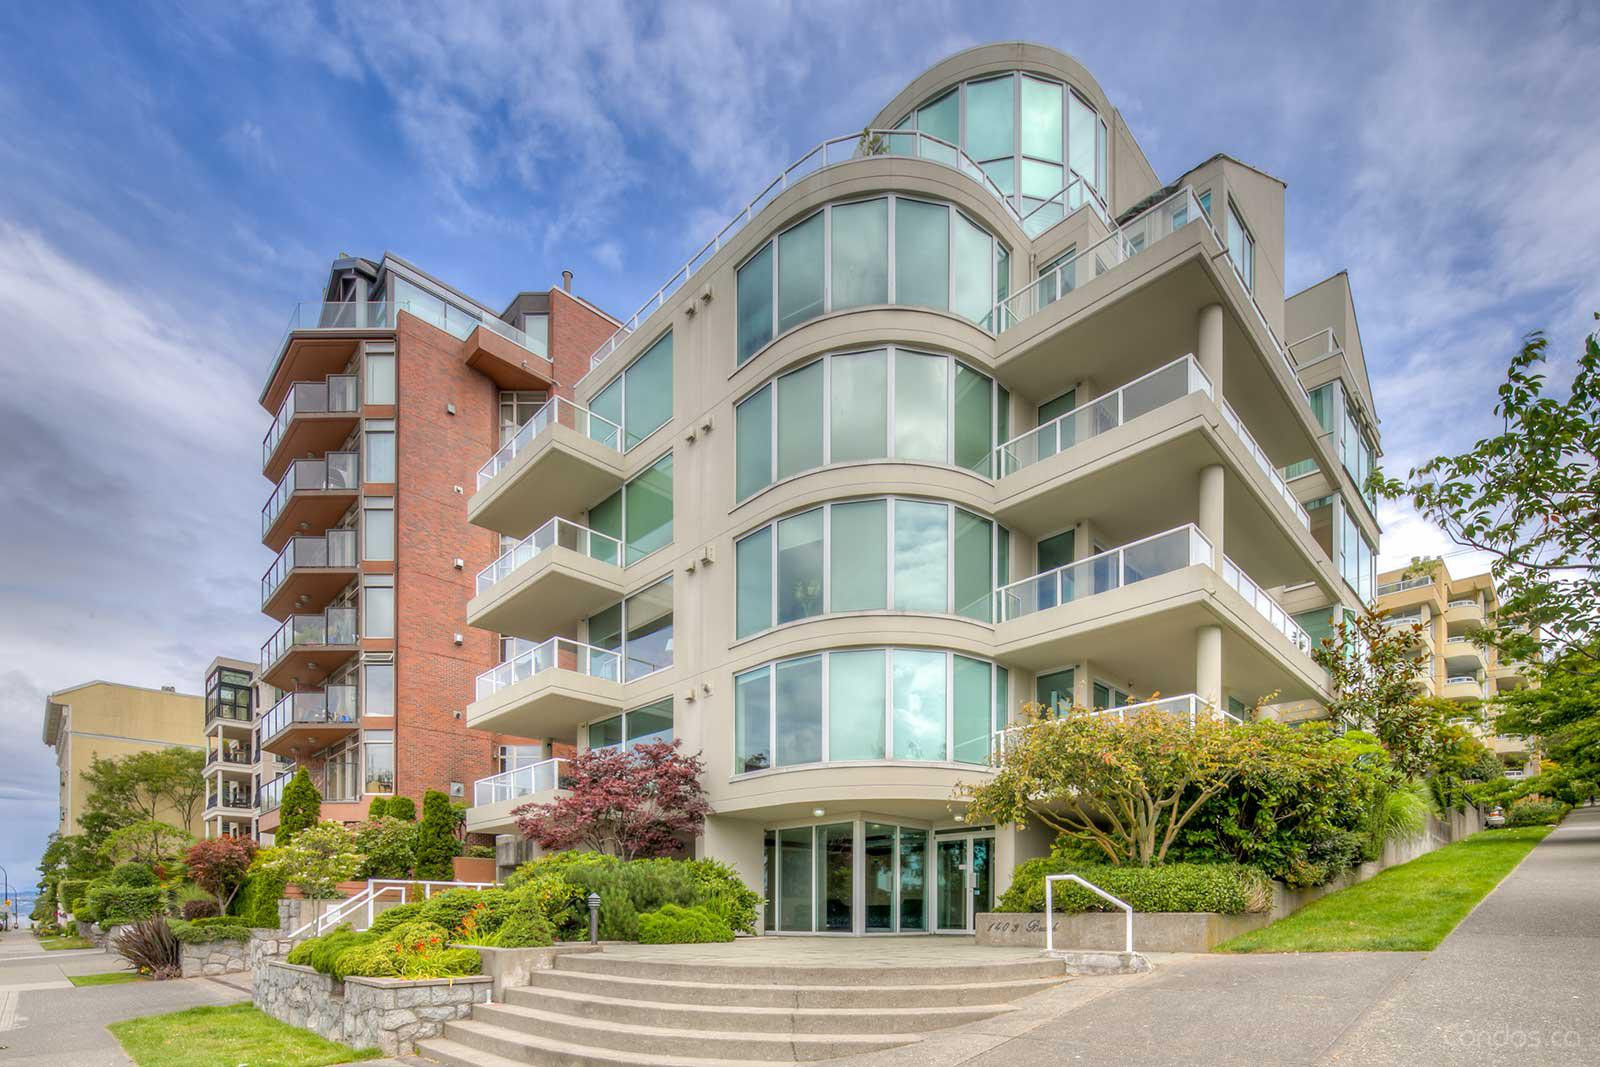 1403 Beach at 1403 Beach Ave, Vancouver 1